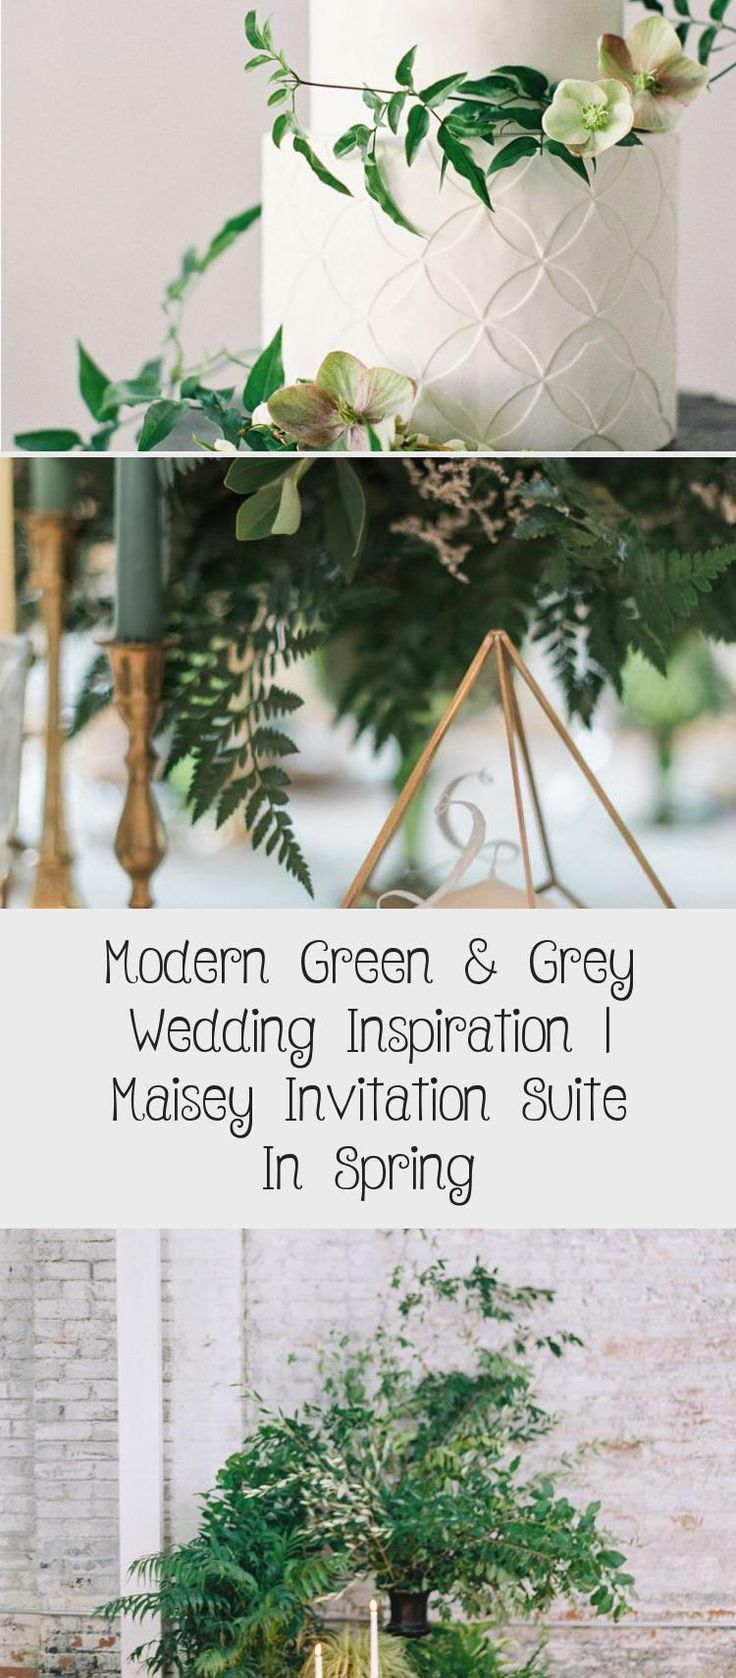 Botanical illustration Green & Grey Wedding inspiration perfect for a modern garden wedding or an urban wedding dripping with greenery. Palette of greens - emerald and sage. Earthy and organic with clean, modern touches. Bridesmaid dresses #BridesmaidDressesPastel #TaupeBridesmaidDresses #BridesmaidDressesMint #PeachBridesmaidDresses #BridesmaidDressesCoral